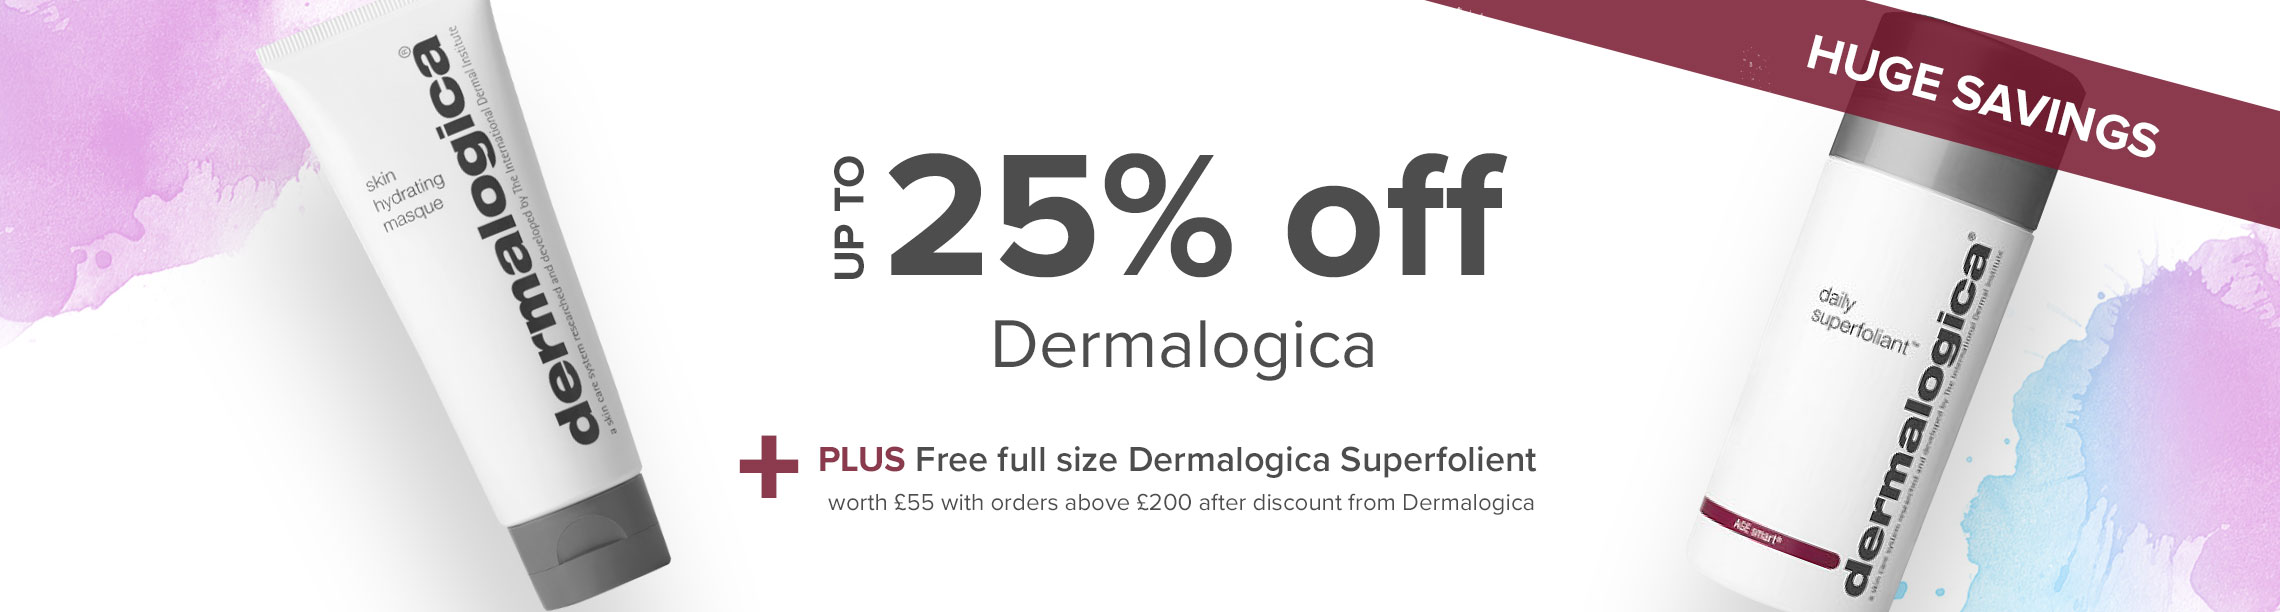 up to 20% off dermalogica plus free gift